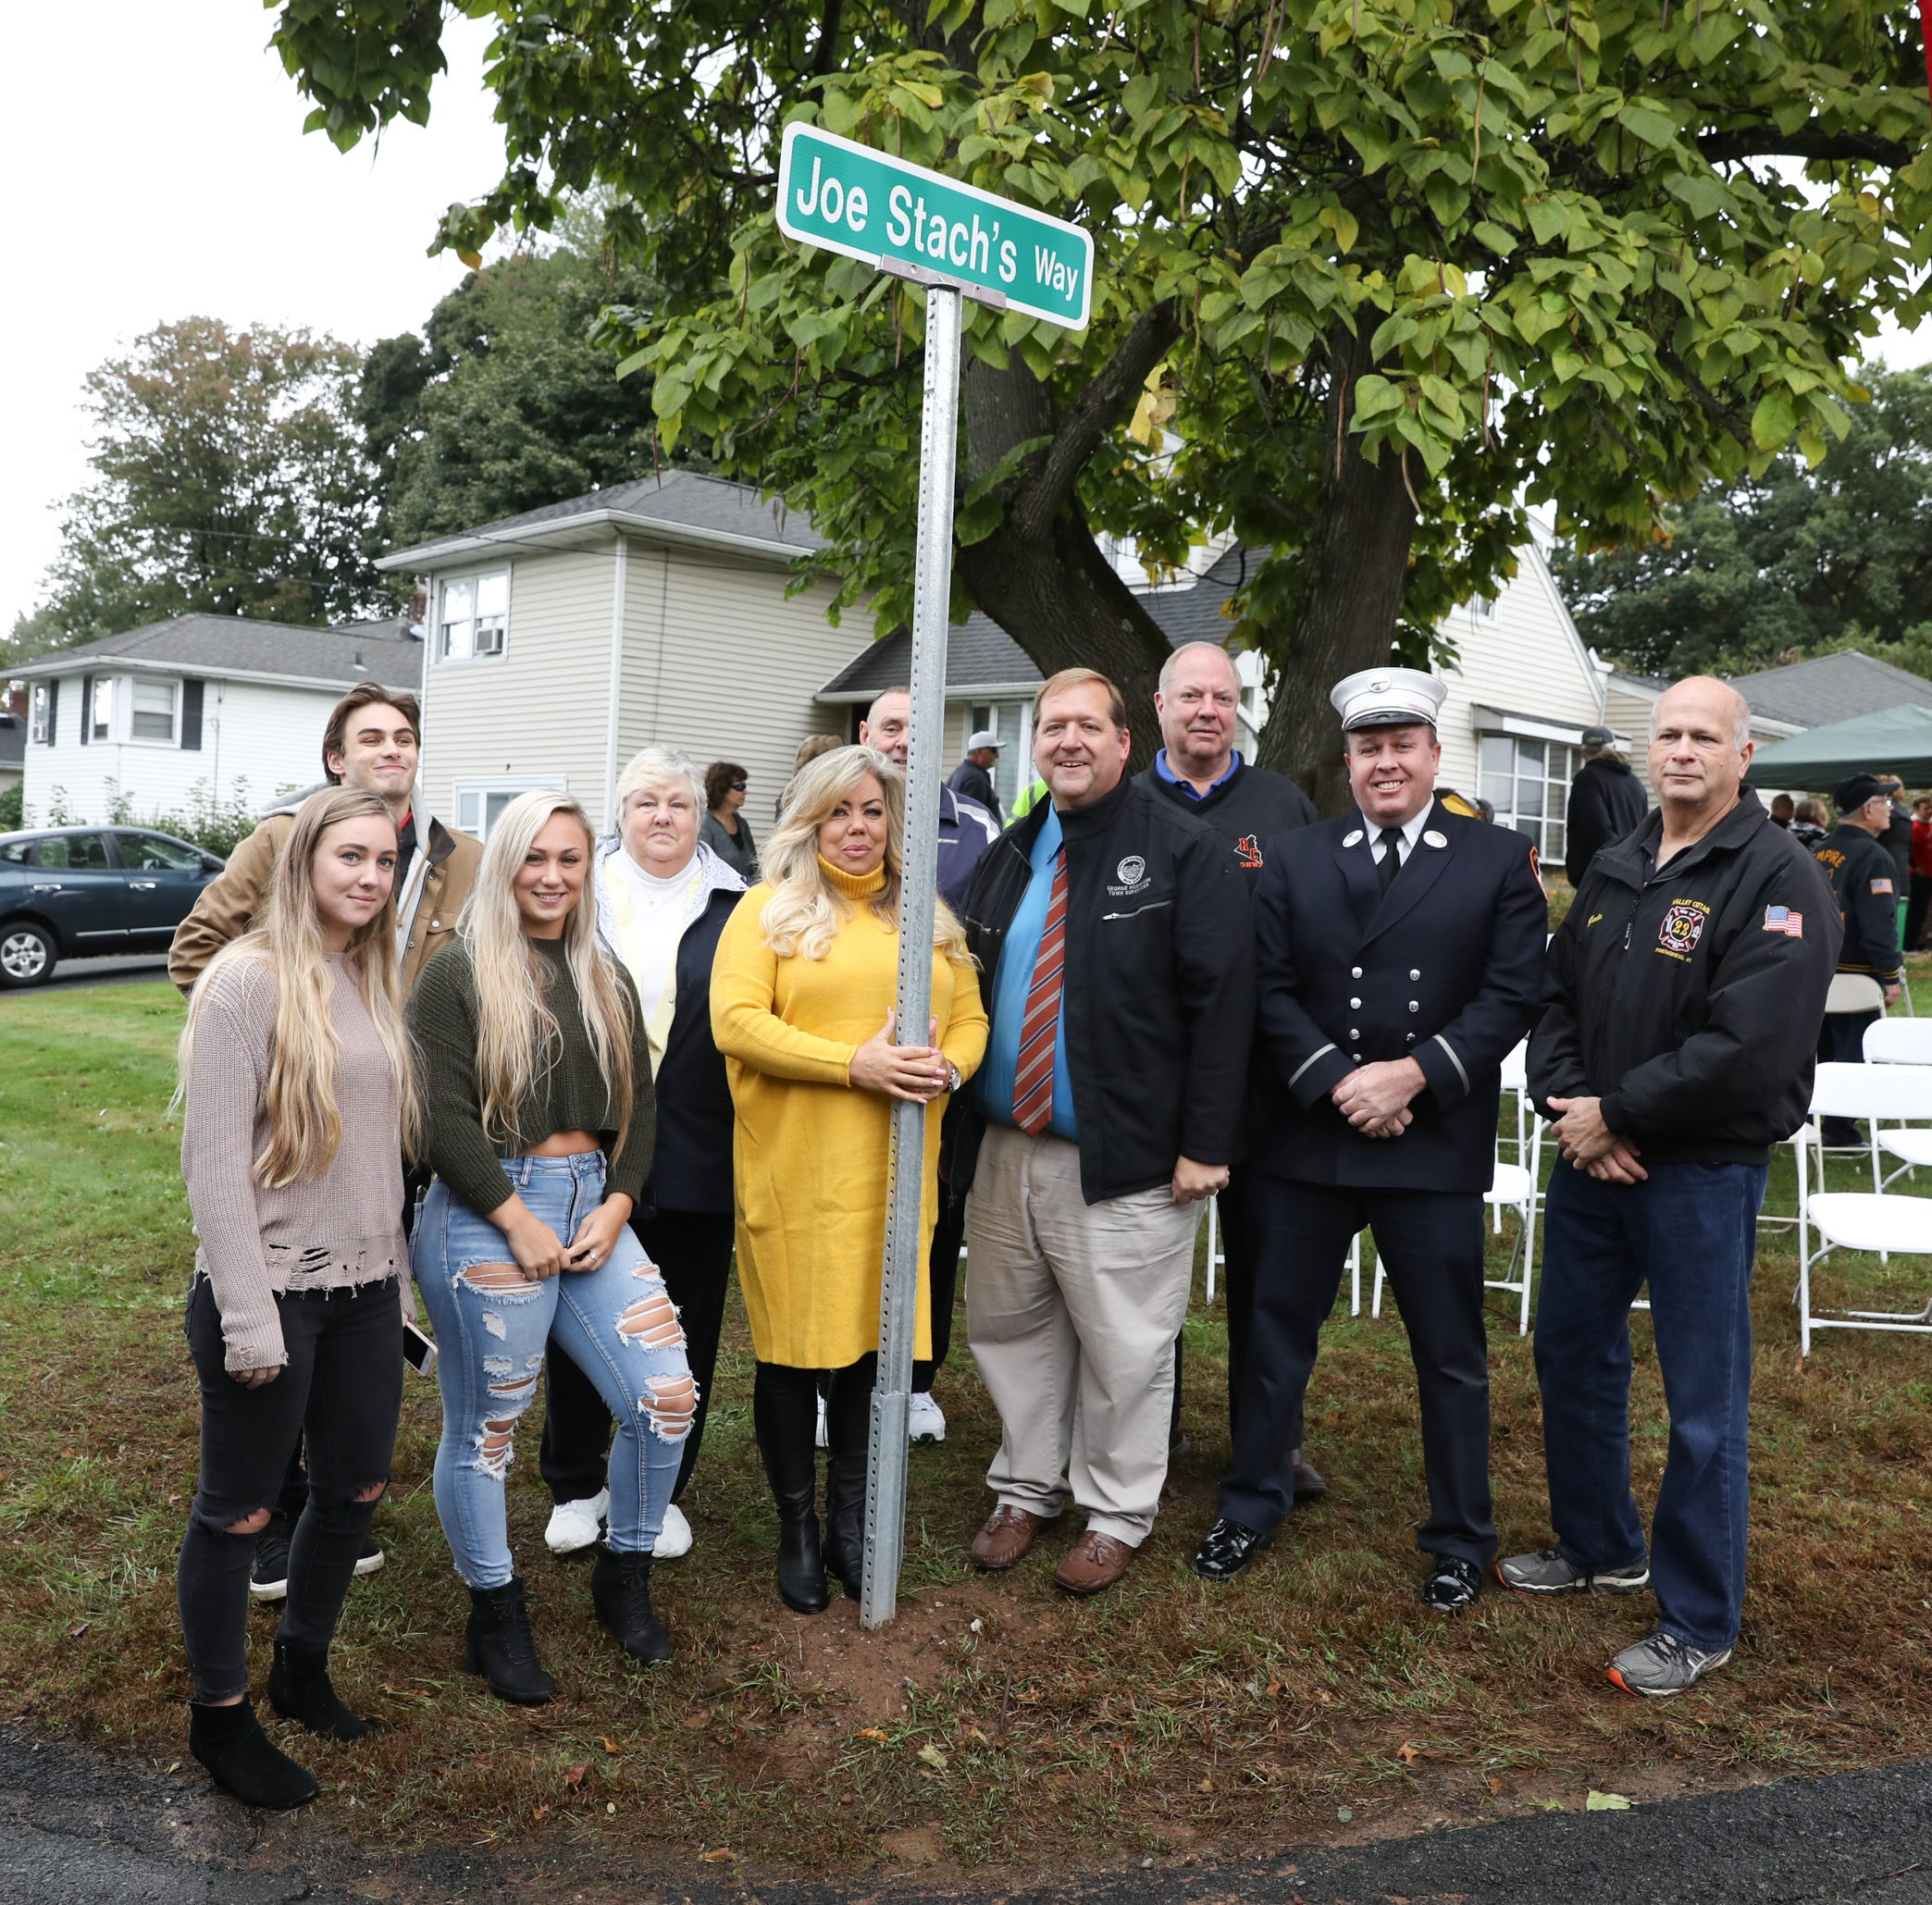 The Stach family unveil the street sign during a street naming dedication for Valley Cottage resident FDNY Lt. Joe Stach on Saturday, October 13, 2018.